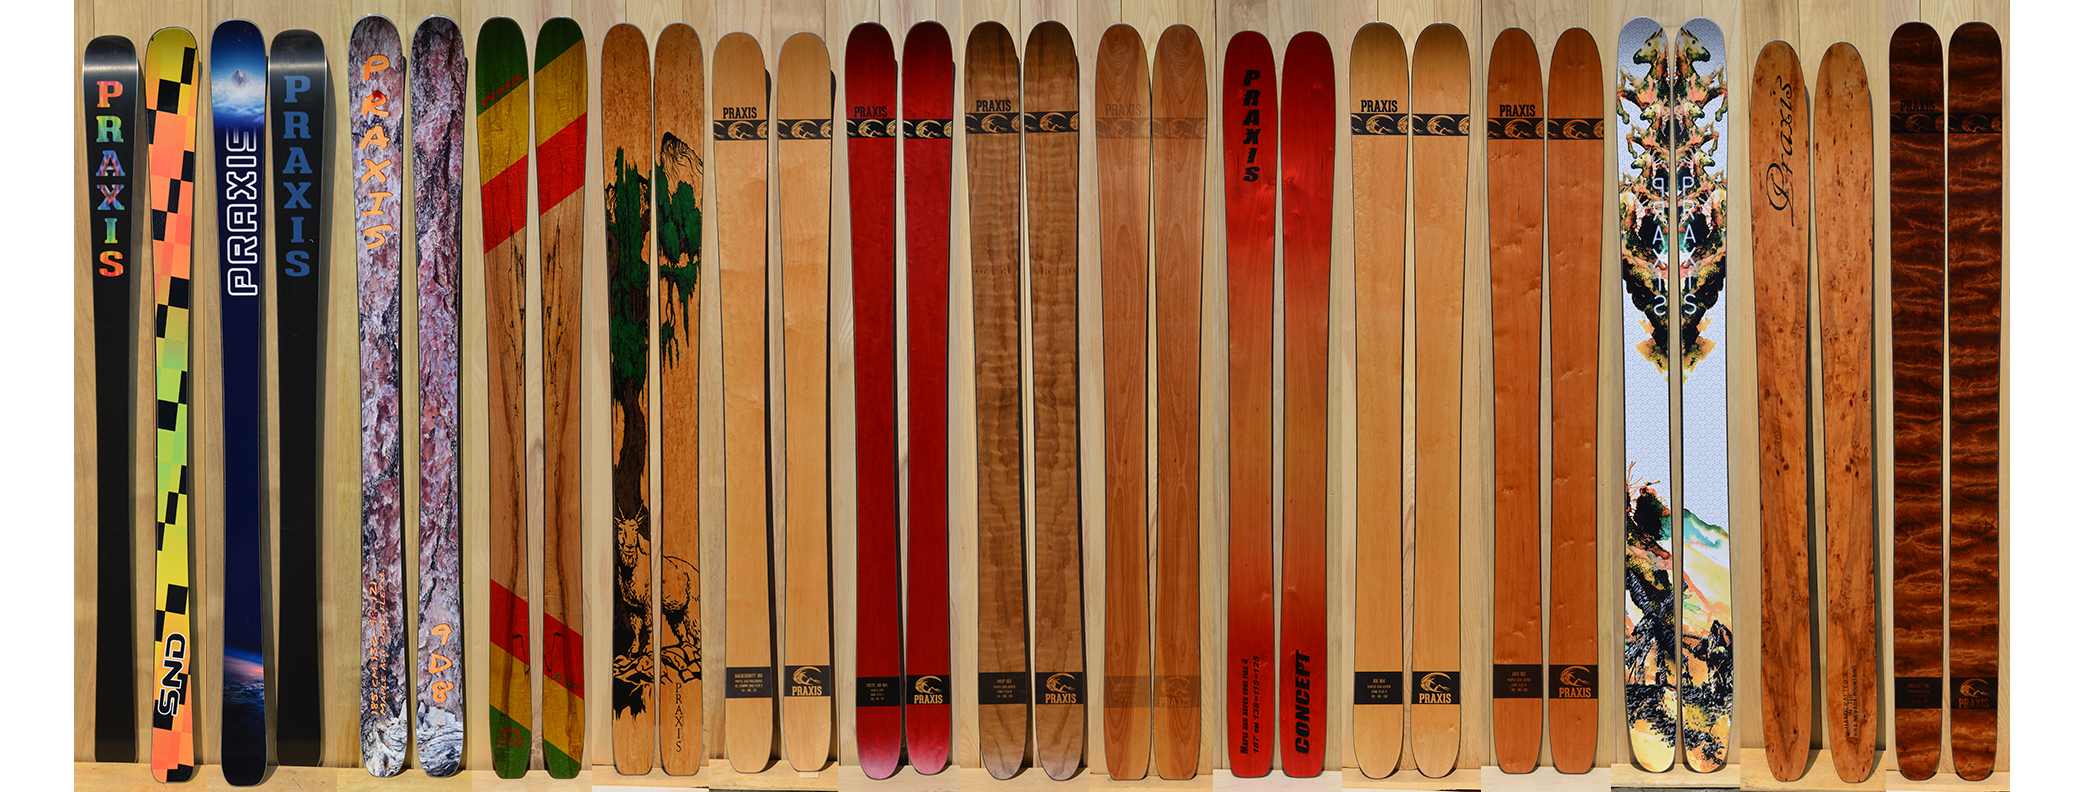 Handcrafted powder skis - all mountain skis- touring skis - big mountain skis - the latest collection of handmade skis from Praxis